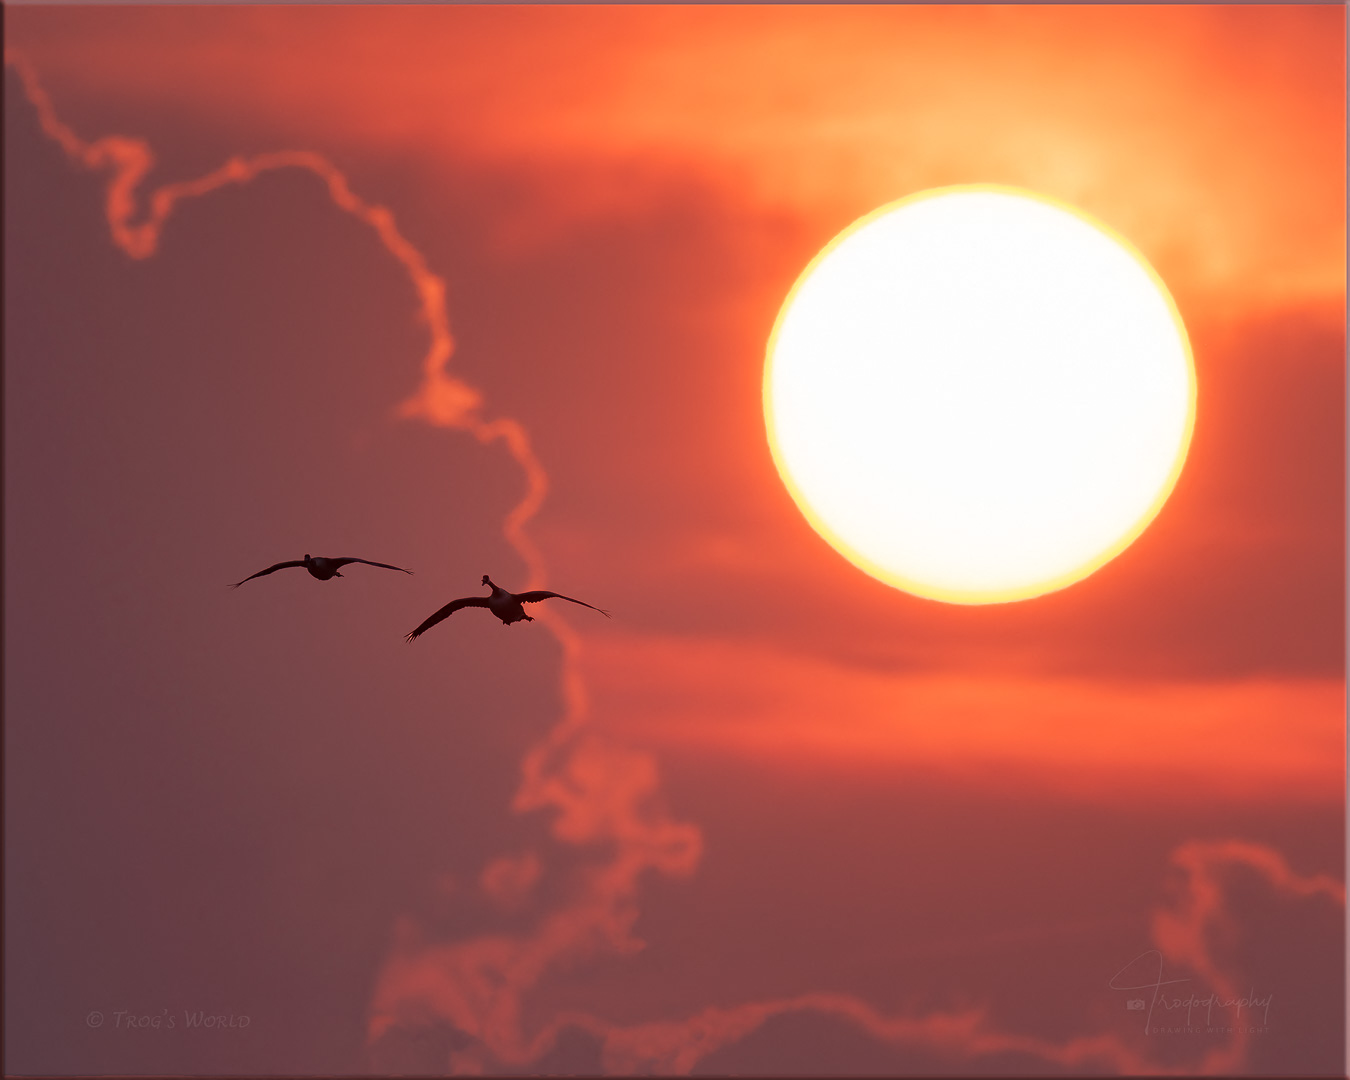 Geese flying and setting sun